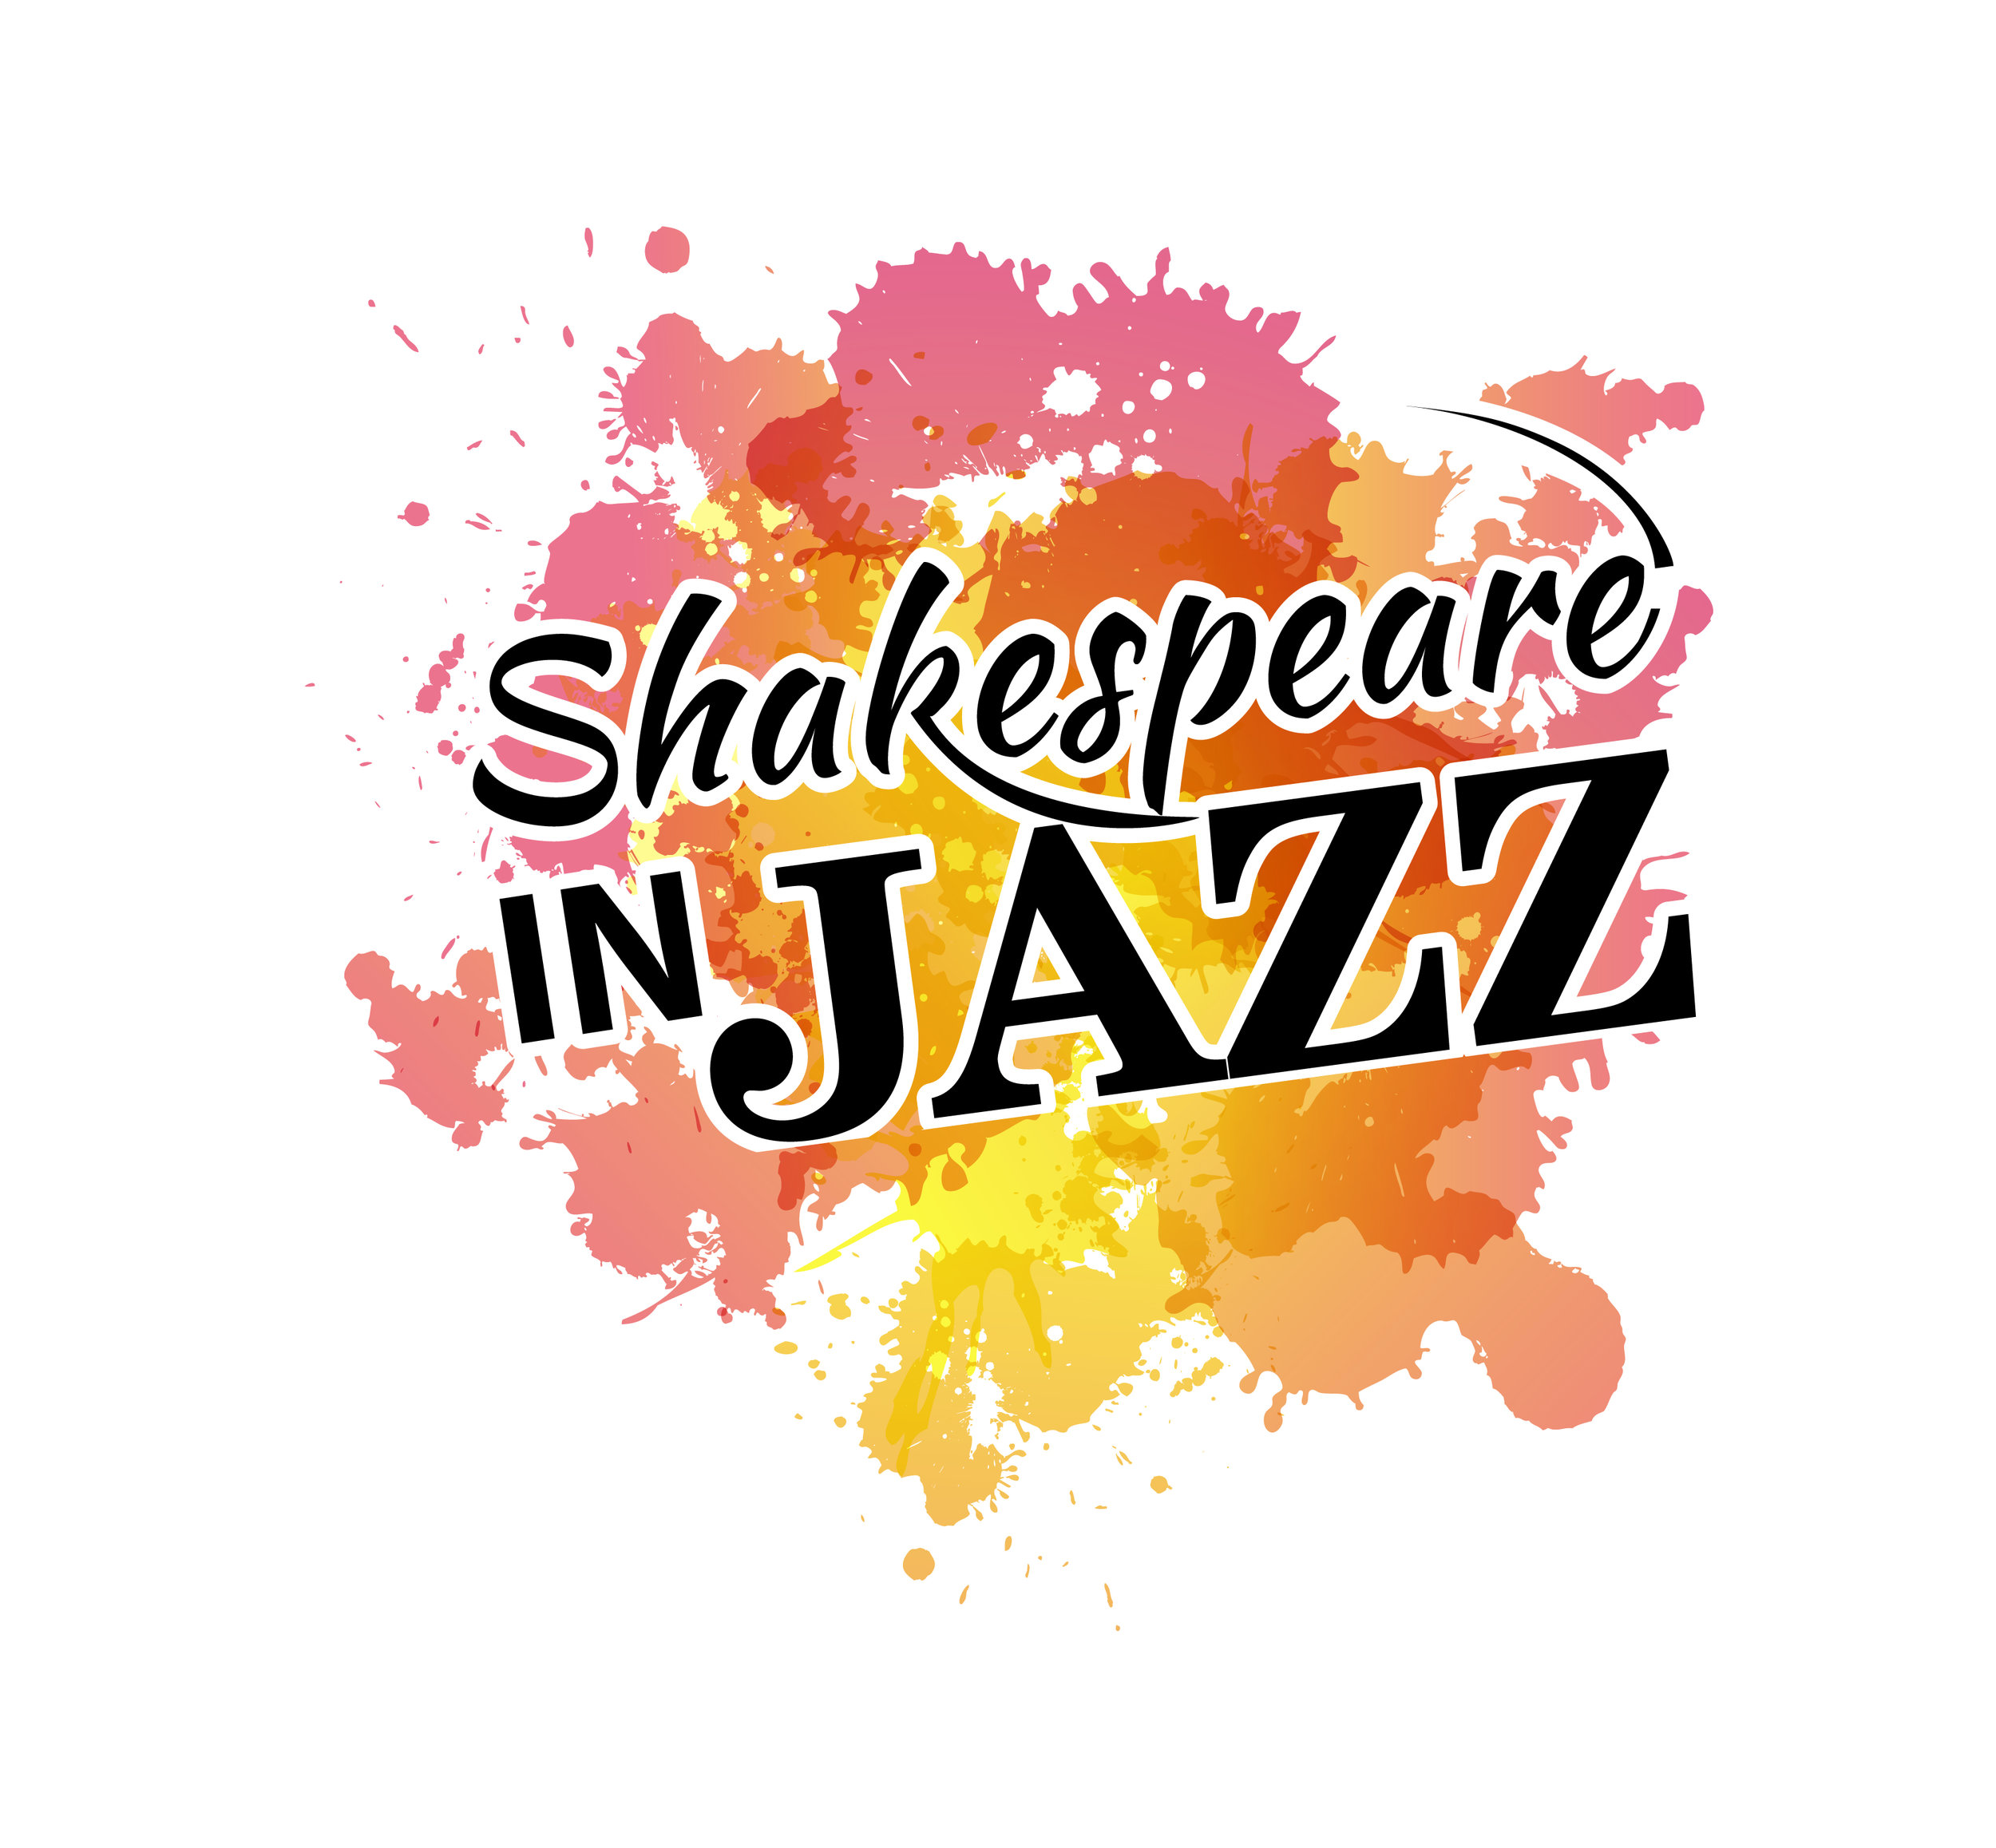 Click to download:  Shakespeare in Jazz LOGO - high resolution